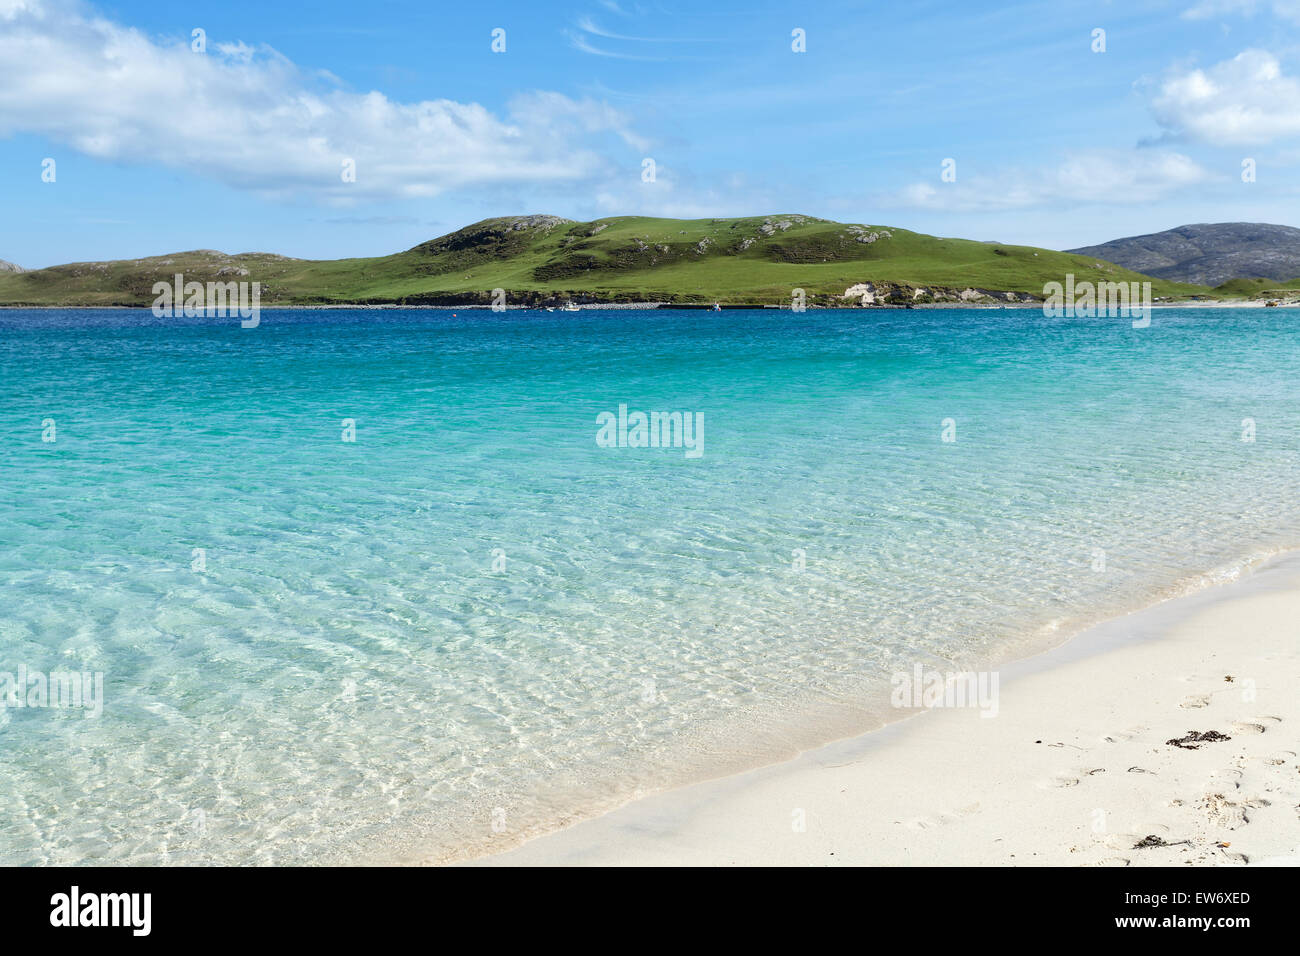 Sandy beach and turquoise sea, Outer Hebrides, Scotland - Stock Image